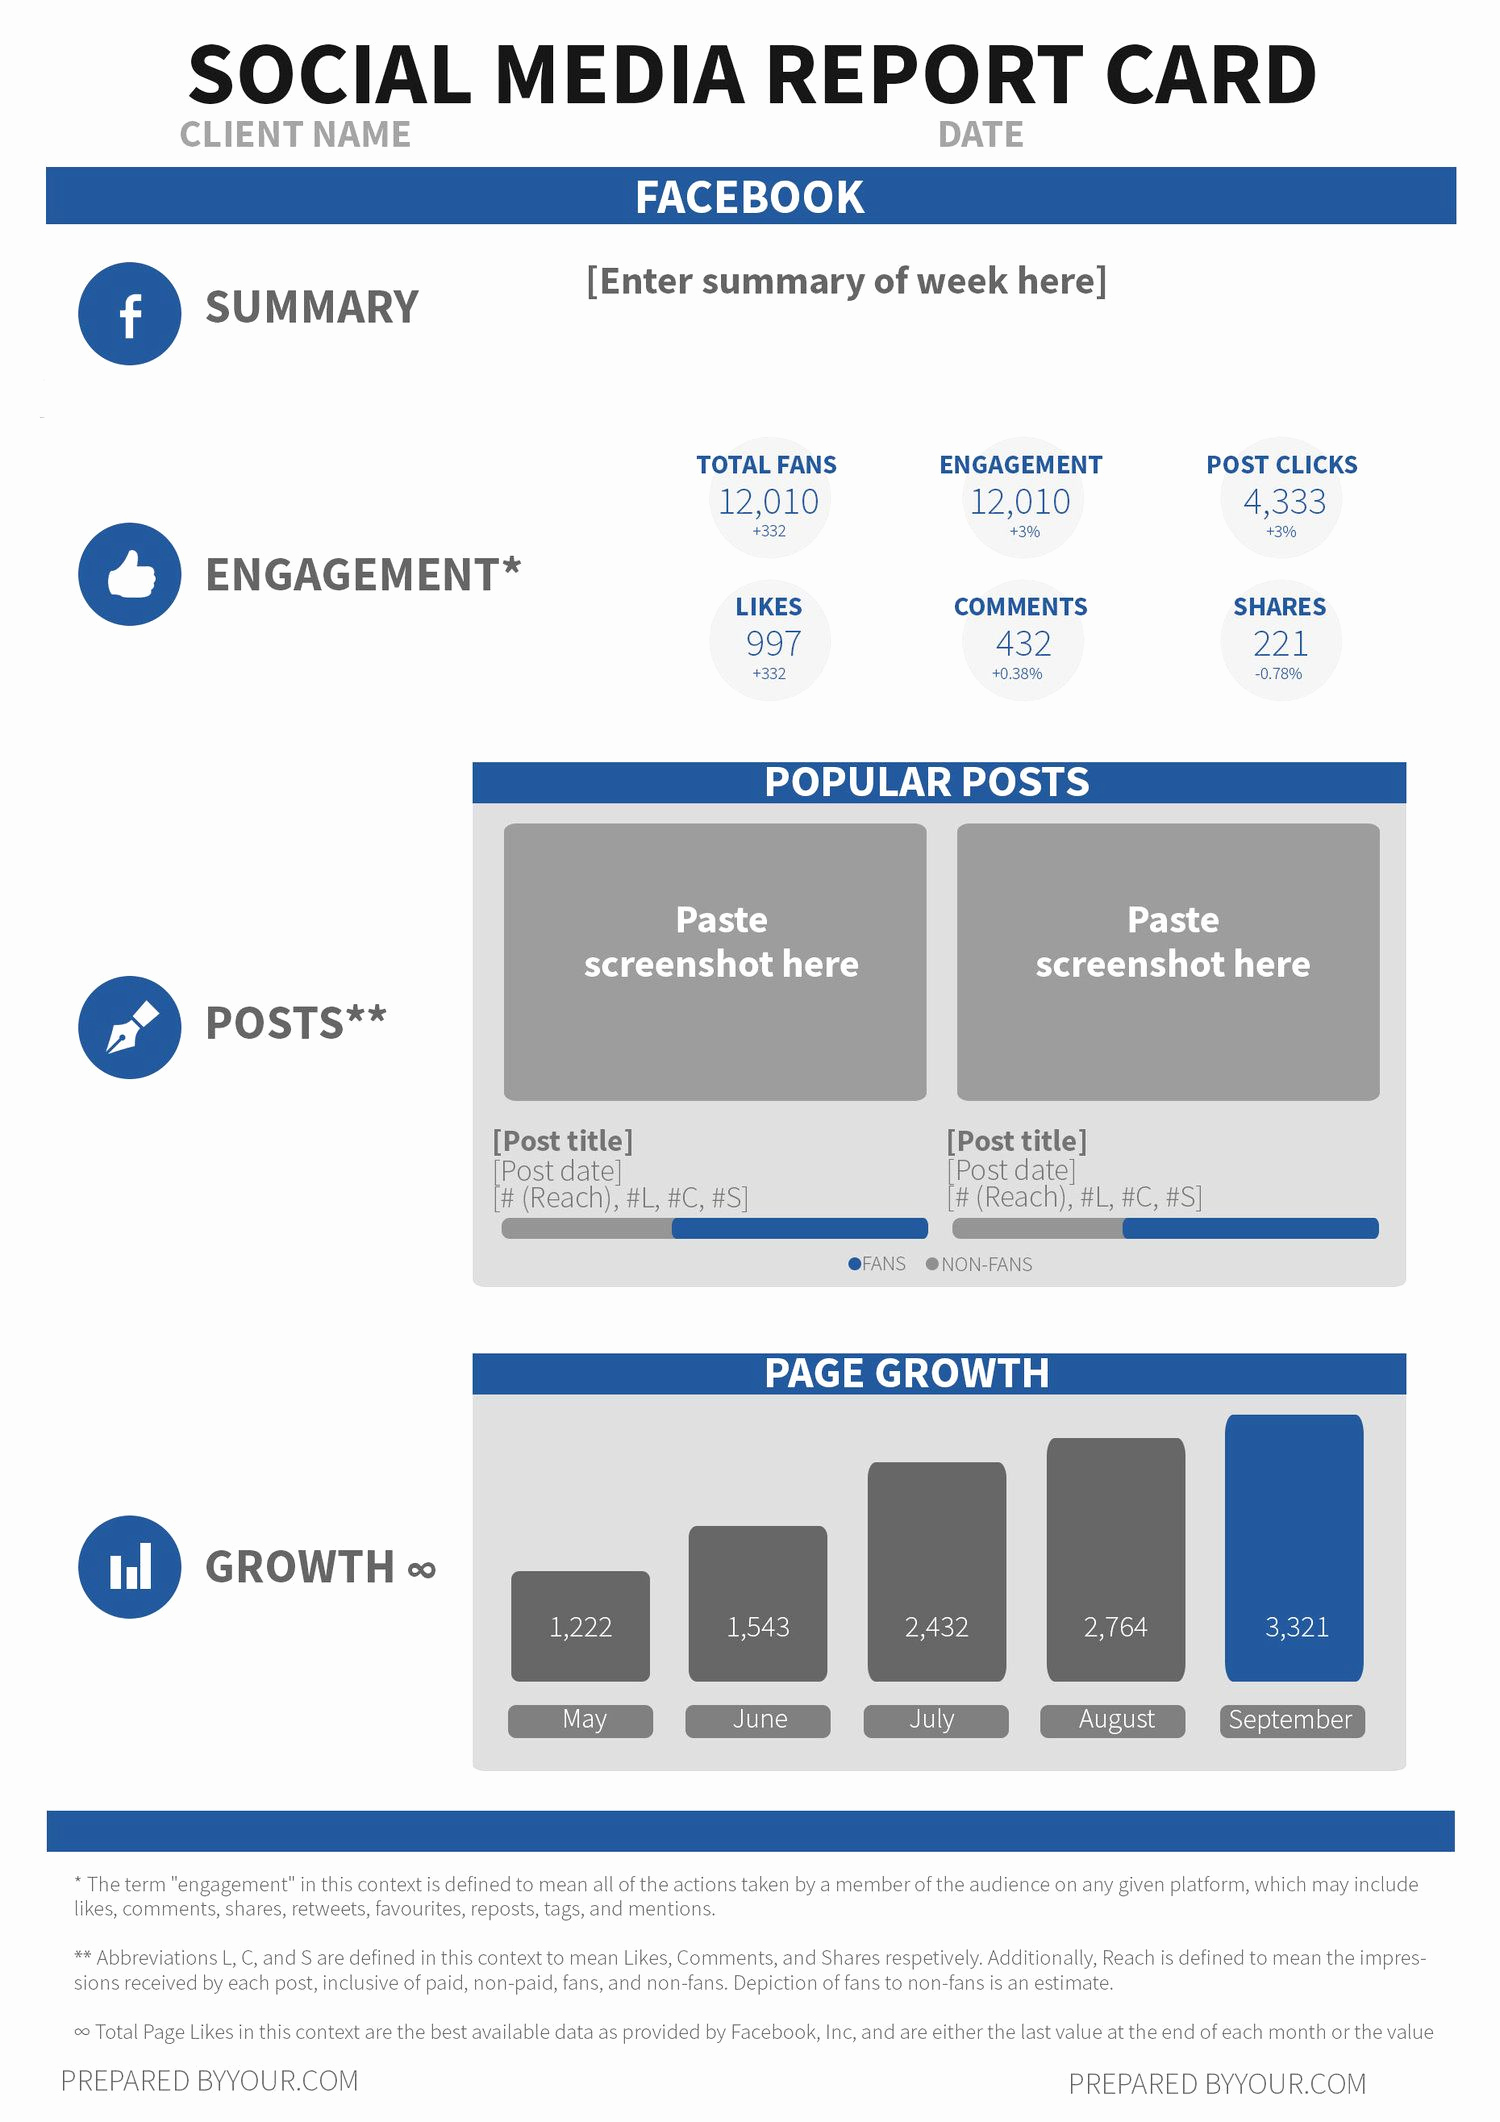 Social Media Report Template Best Of Use This Free social Media Report Card Template to Wow